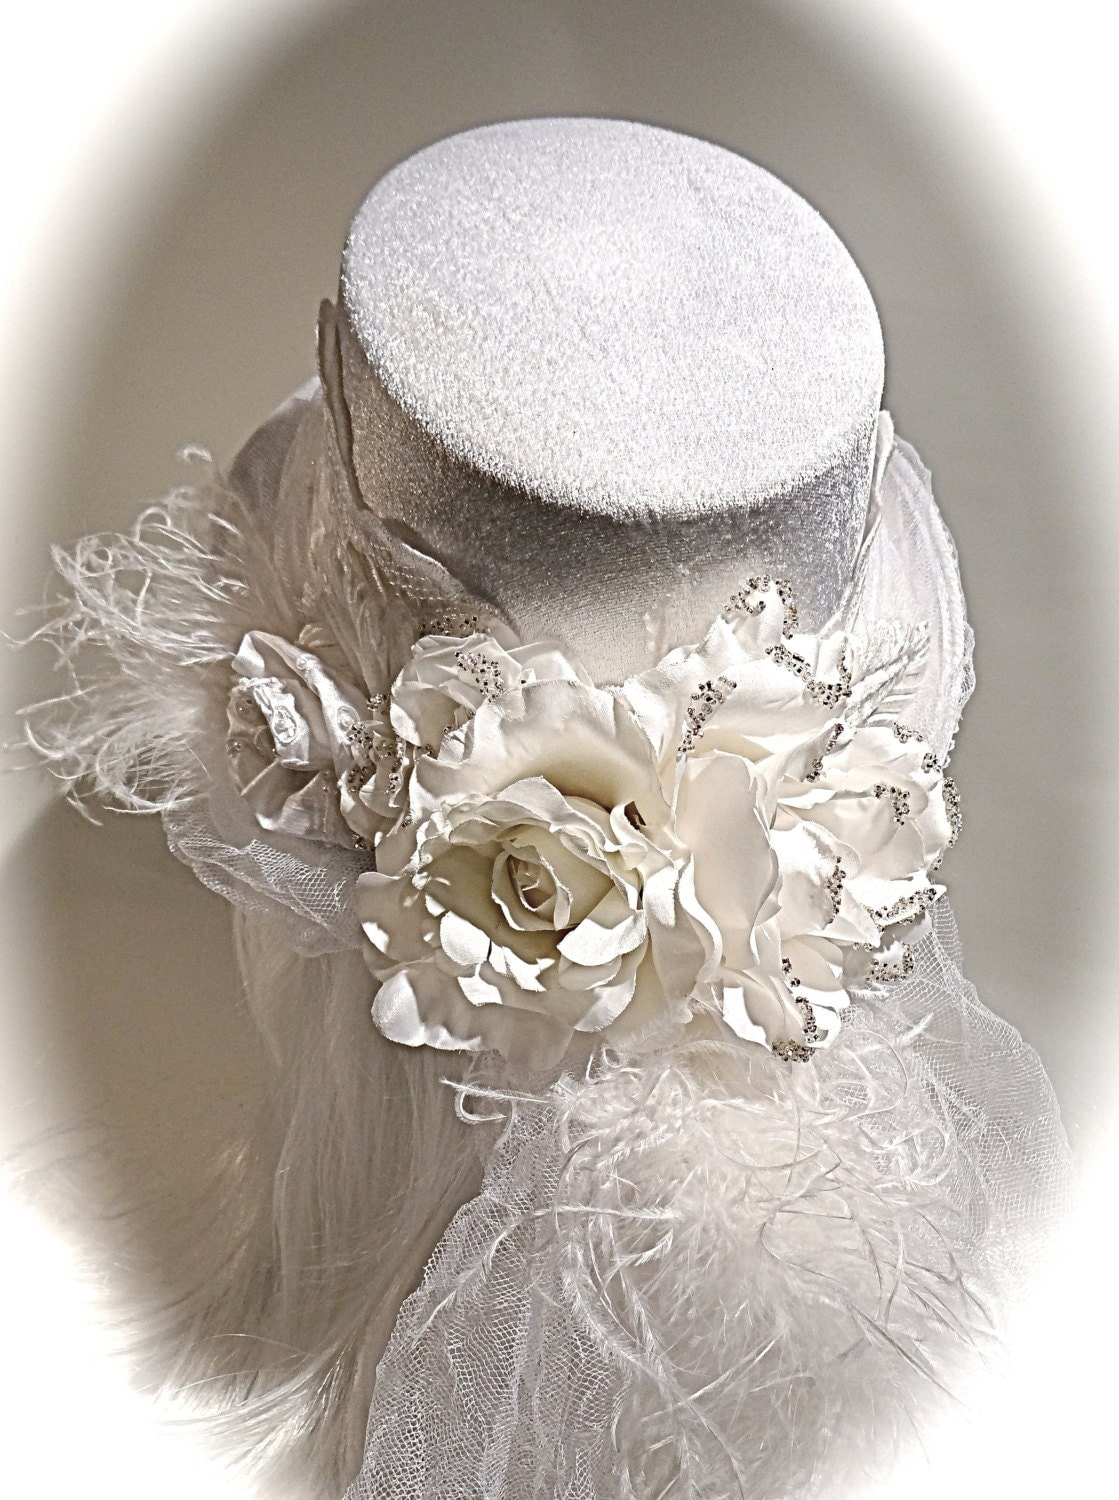 Bridal top hat wedding accessories womens hats bh 110 for Dress hats for weddings